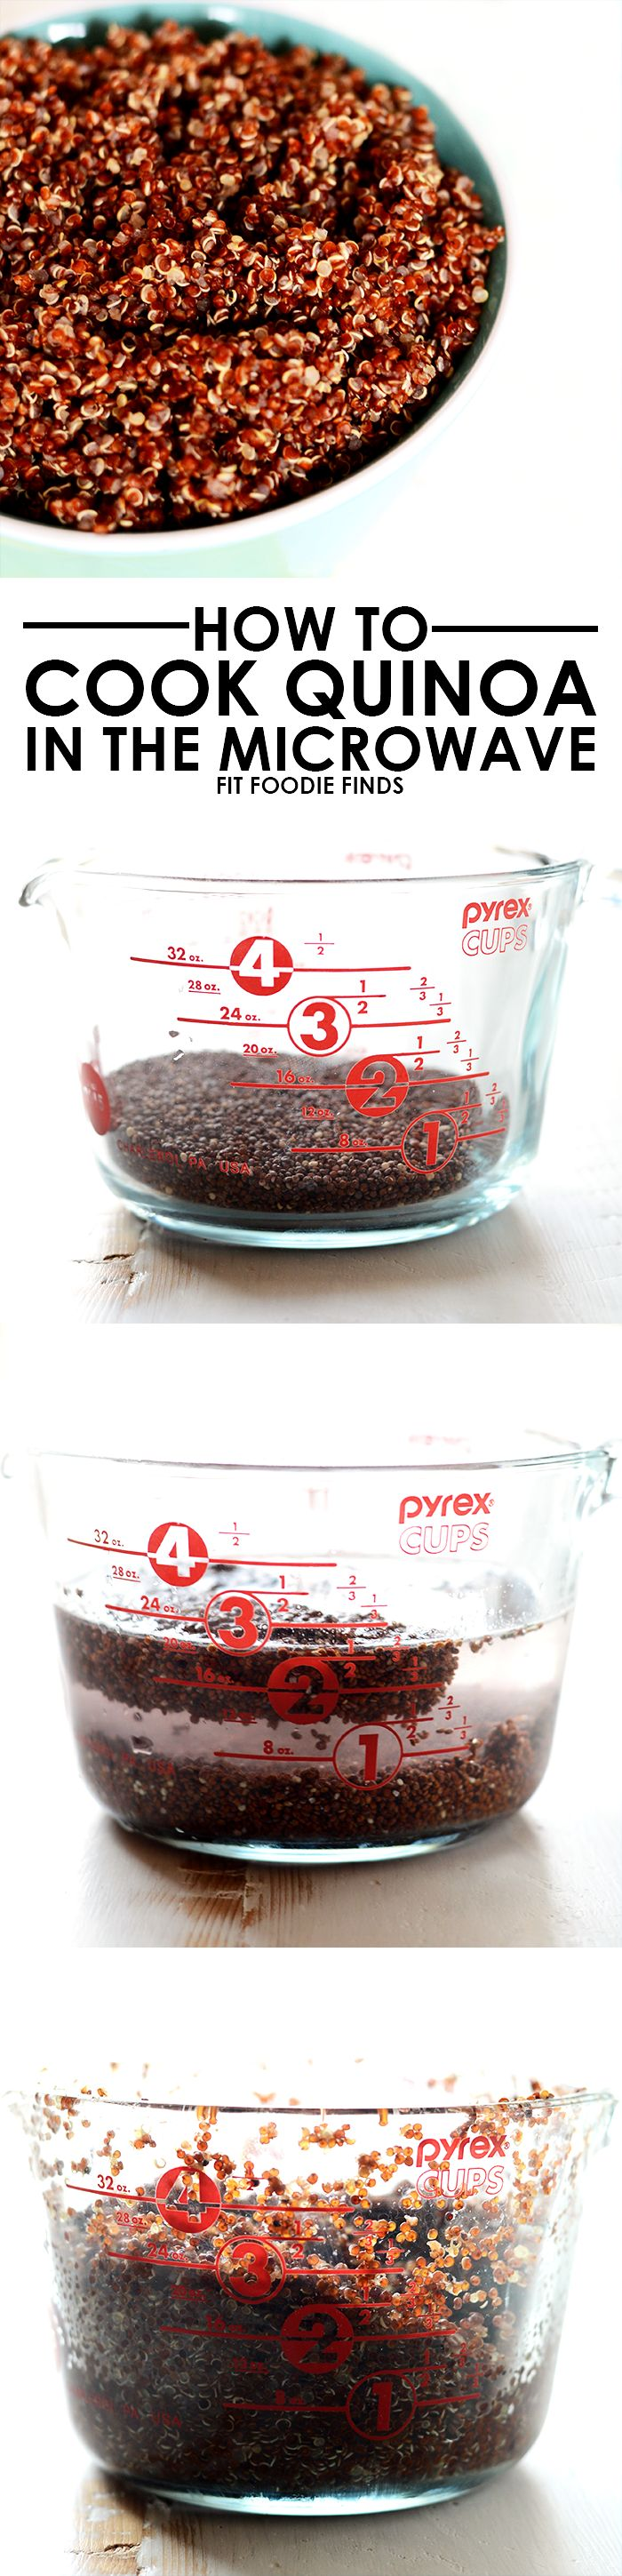 Kitchen Hack: How to Cook Quinoa in the Microwave - amazing! So going to try this when I next cook it.